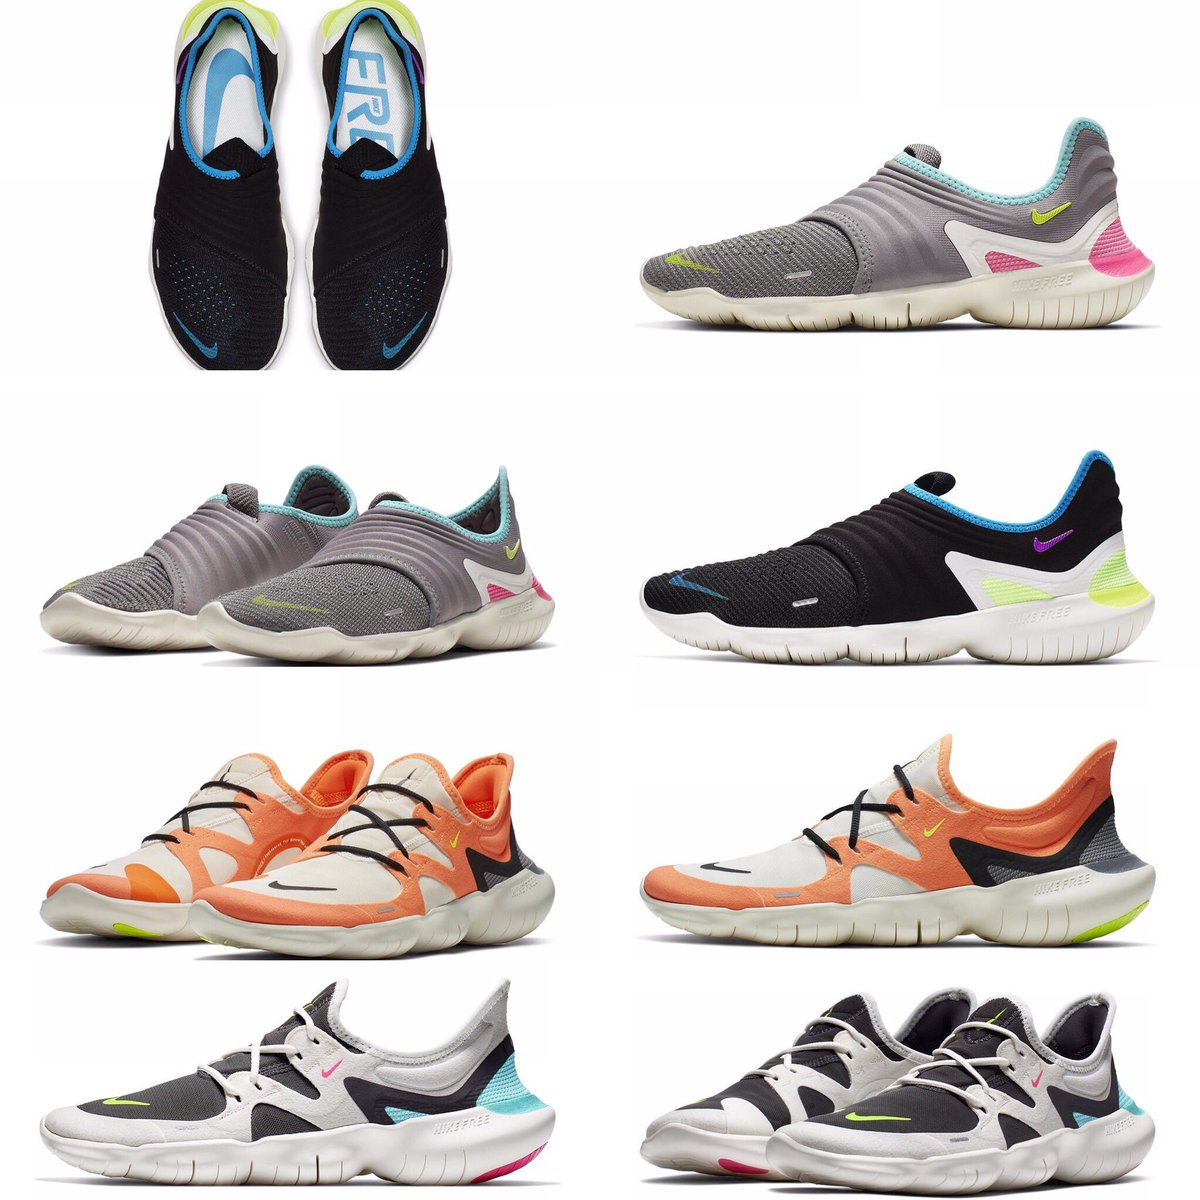 8b6e2d92932b9 The Legendary Nike Free Run Saga Continues With The 3.0 And 5.0 For 2019   sneakersarelife